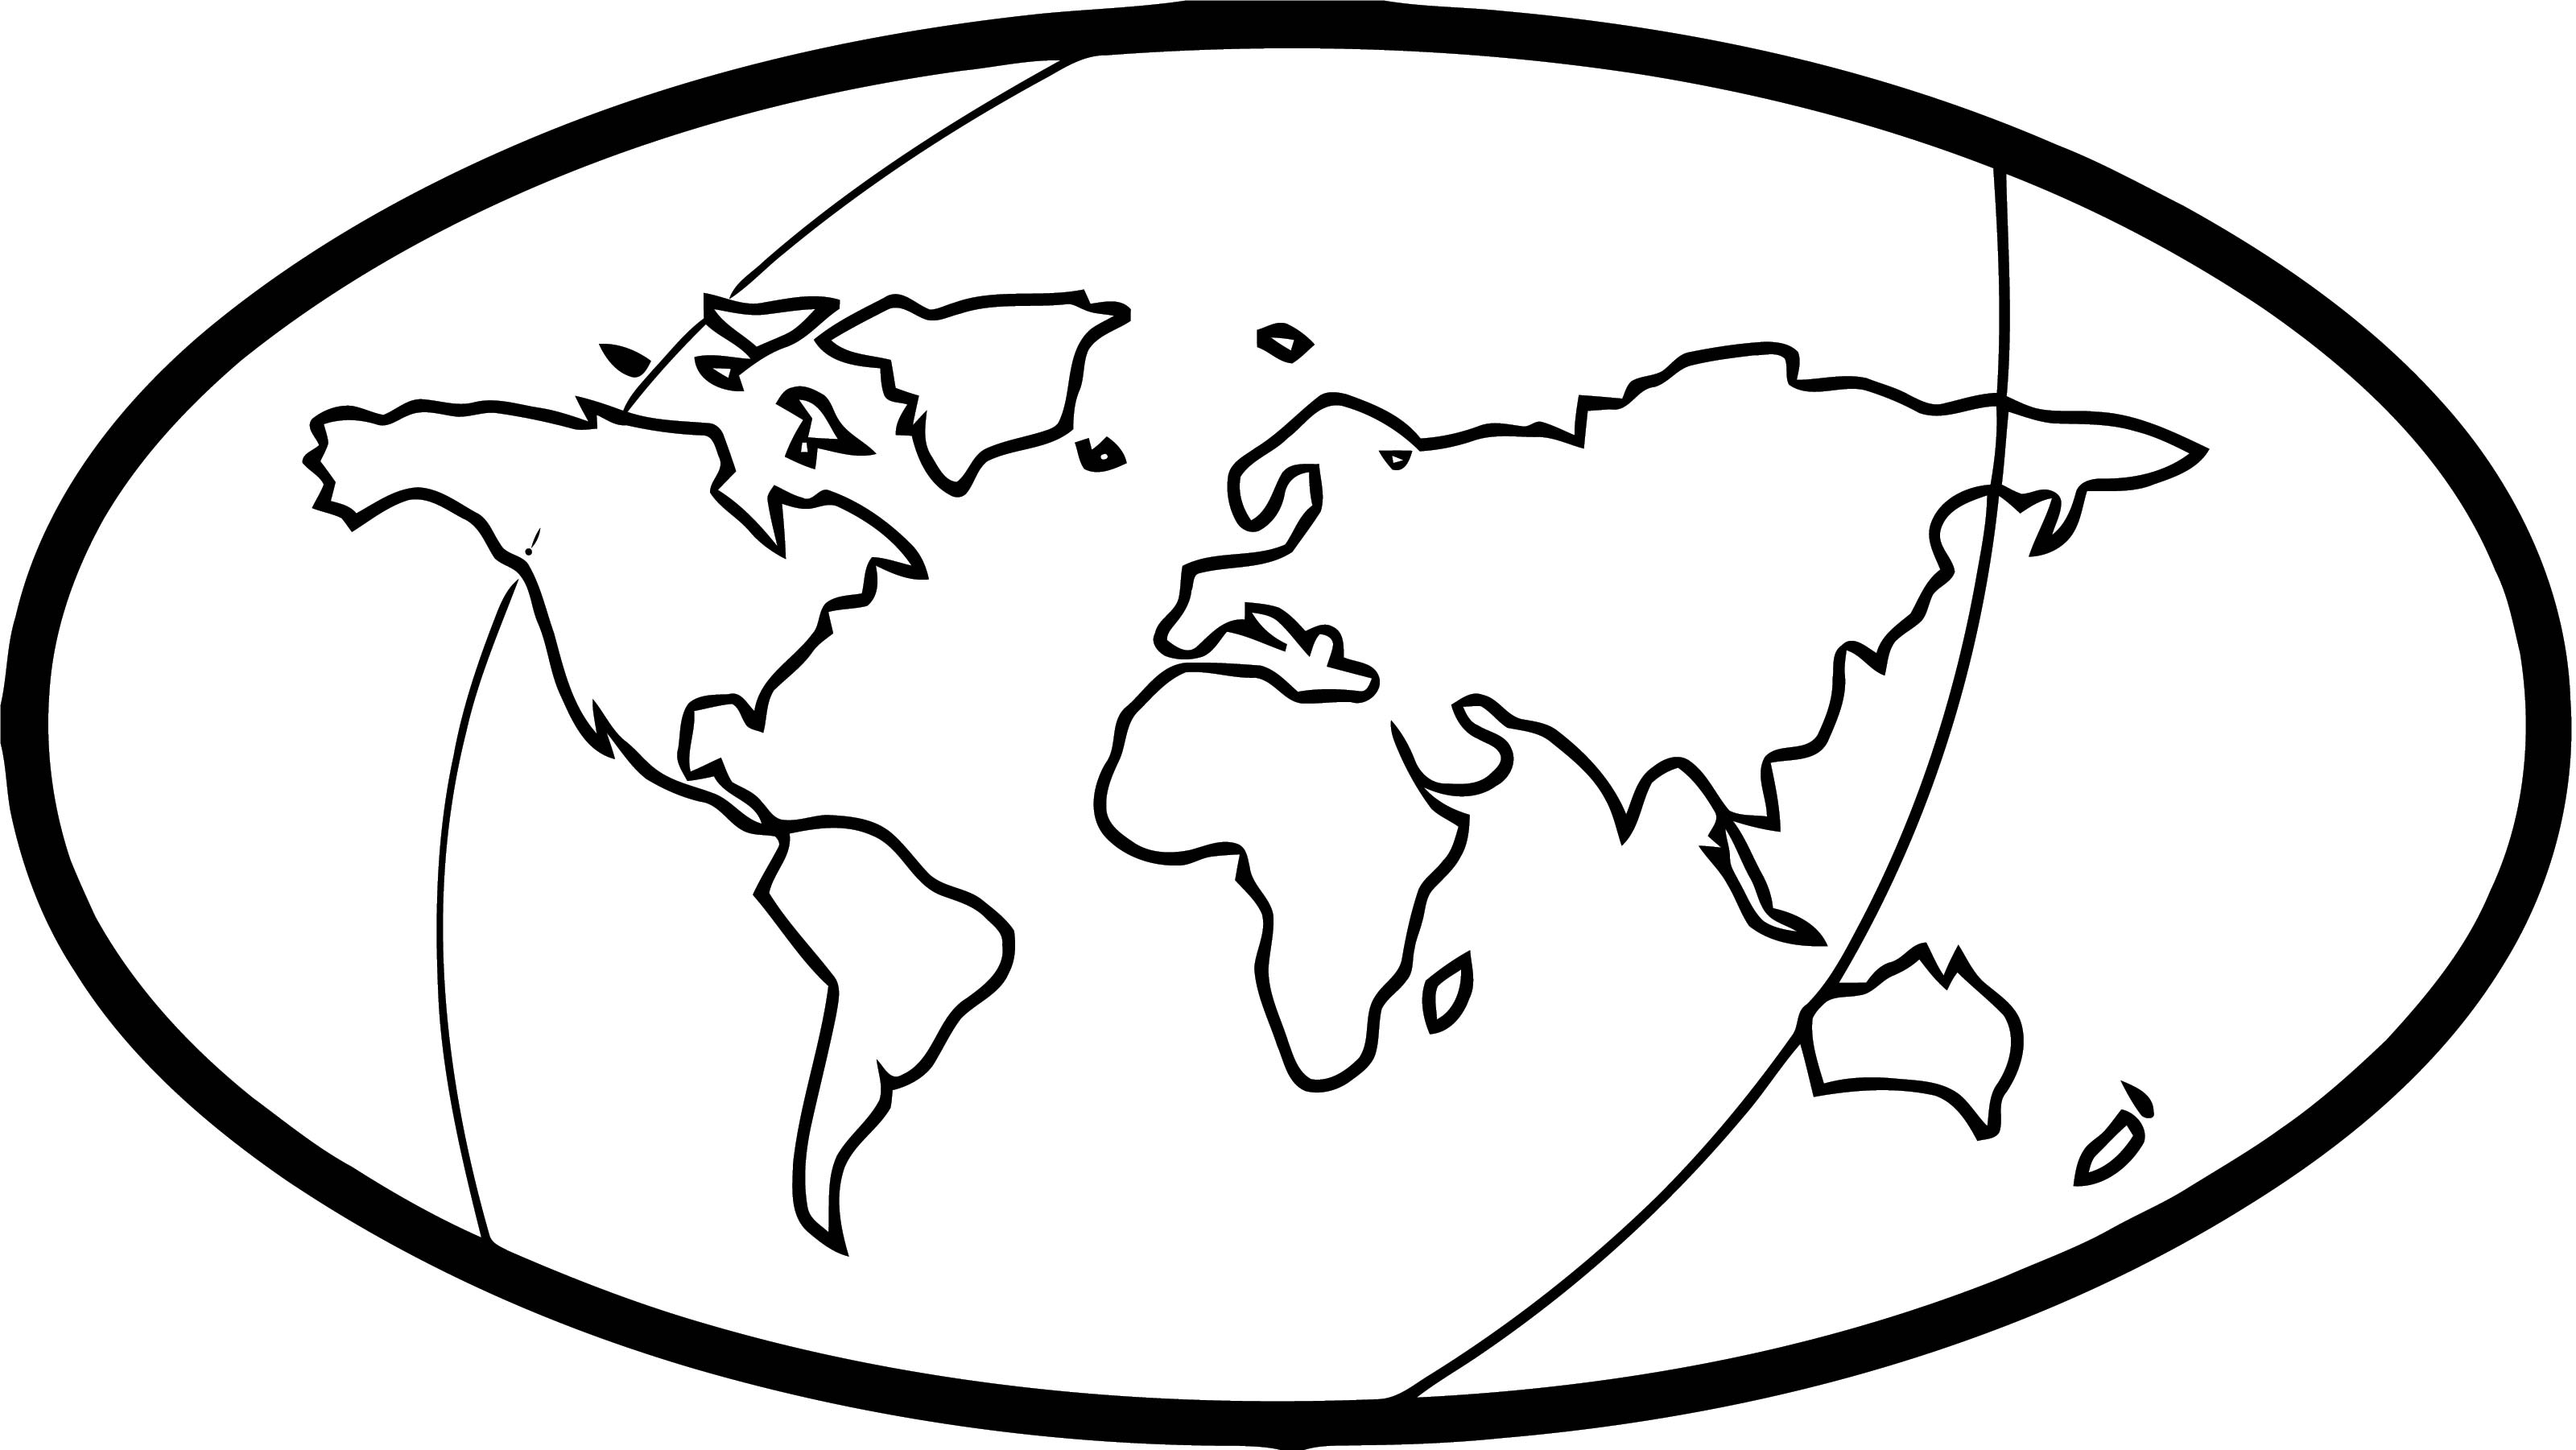 coloring pictures of earth printable earth coloring pages for kids cool2bkids of pictures coloring earth